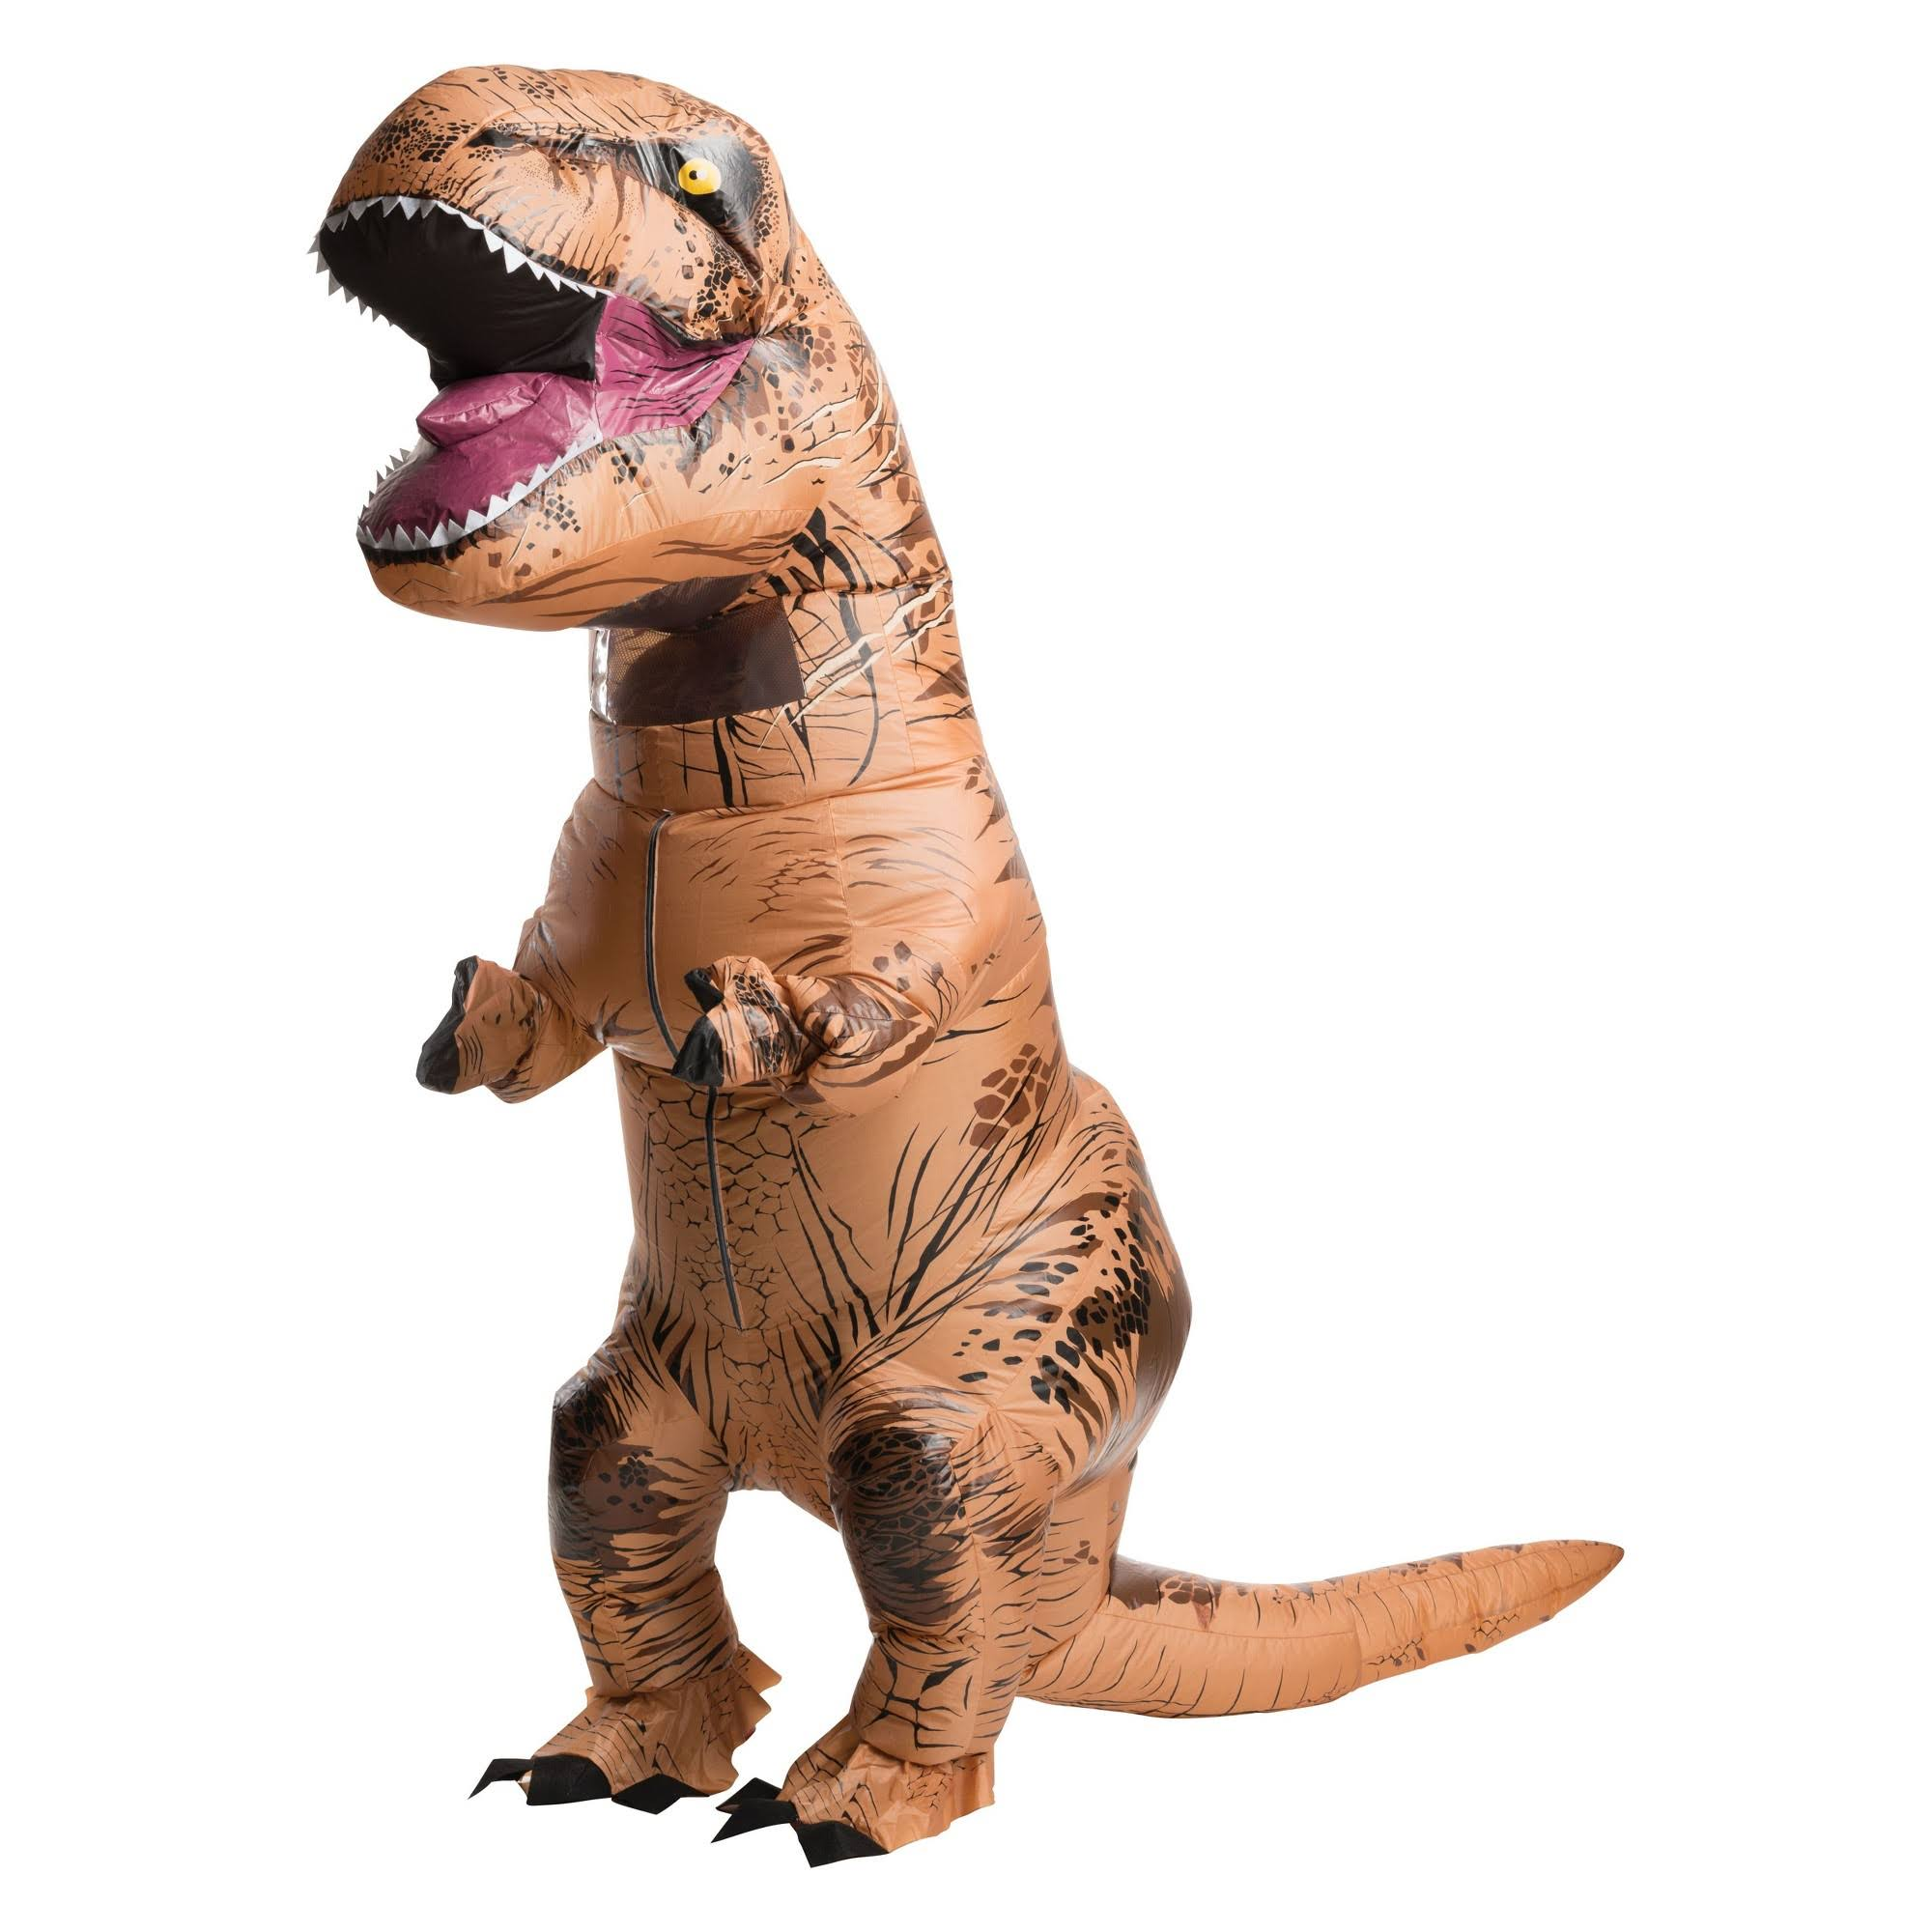 T-rex Jurassic Park World Dinosaur Inflatable Adult Costume - Trex Jurrassic